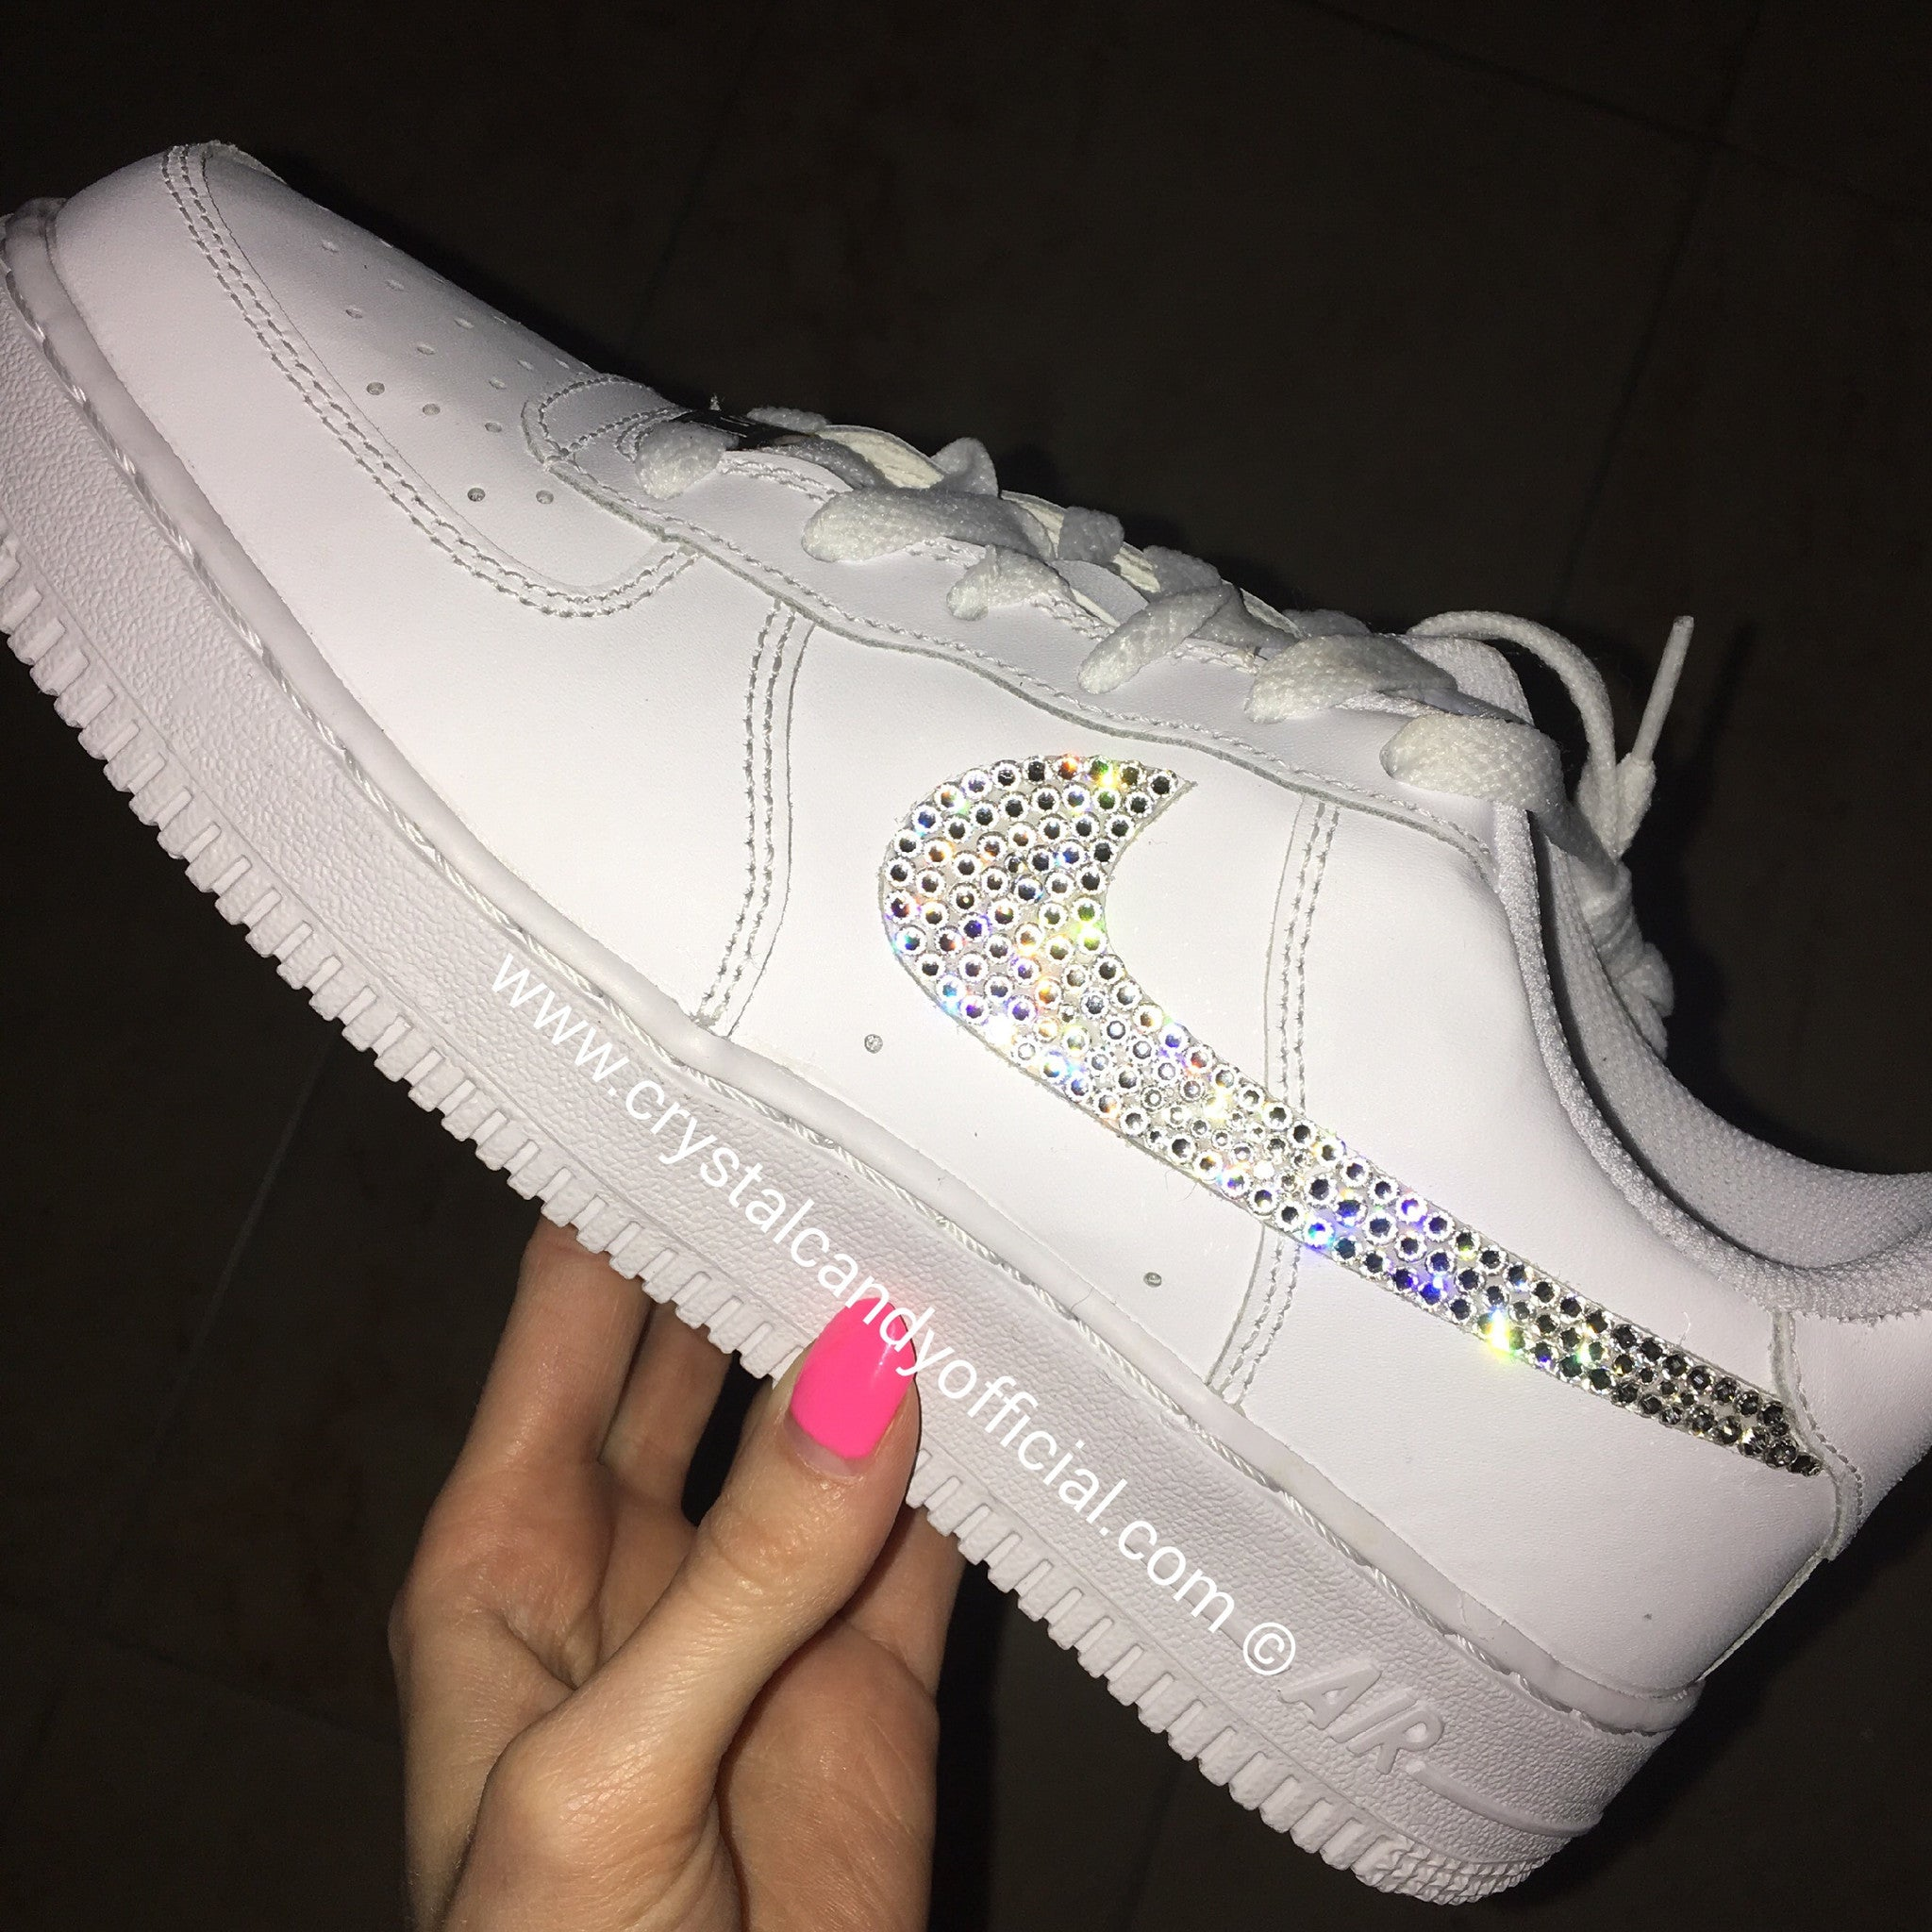 Crystal Nike Air Force 1 in White (Low) - Crystal Candy Limited 21380e7719b4